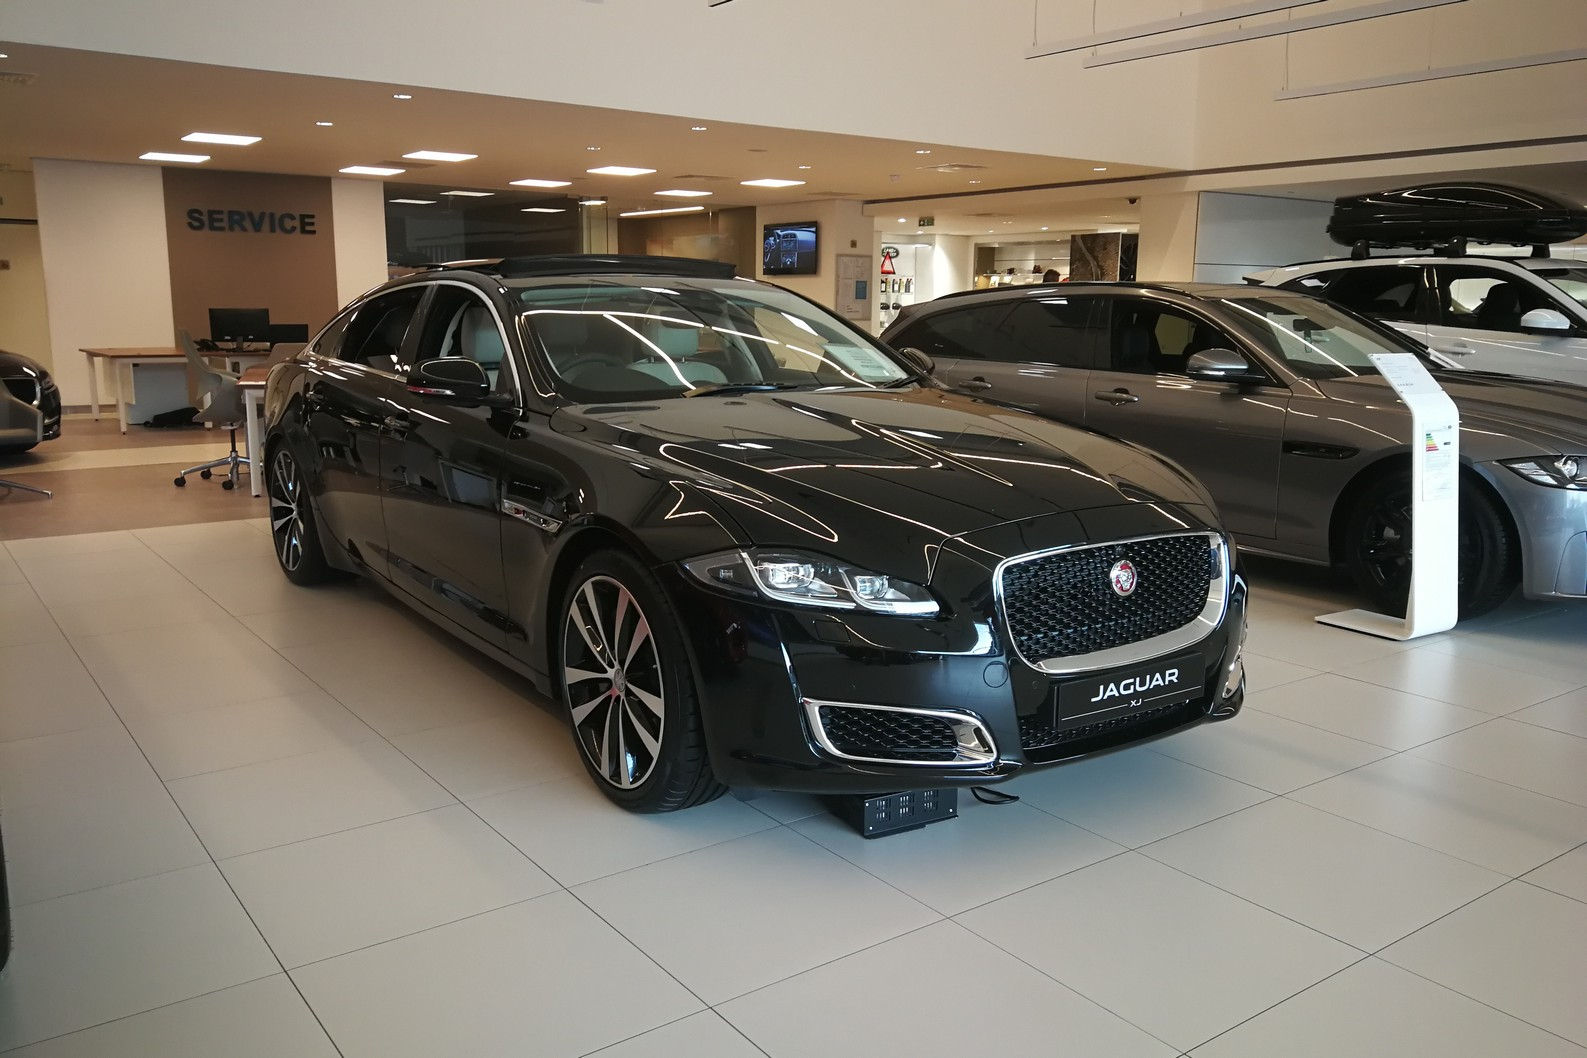 Jaguar XJ 3.0d V6 XJ50 LWB - Delivery Mileage - Surround Camera - Heated and cooled S Diesel Automatic 4 door Saloon (18MY) image